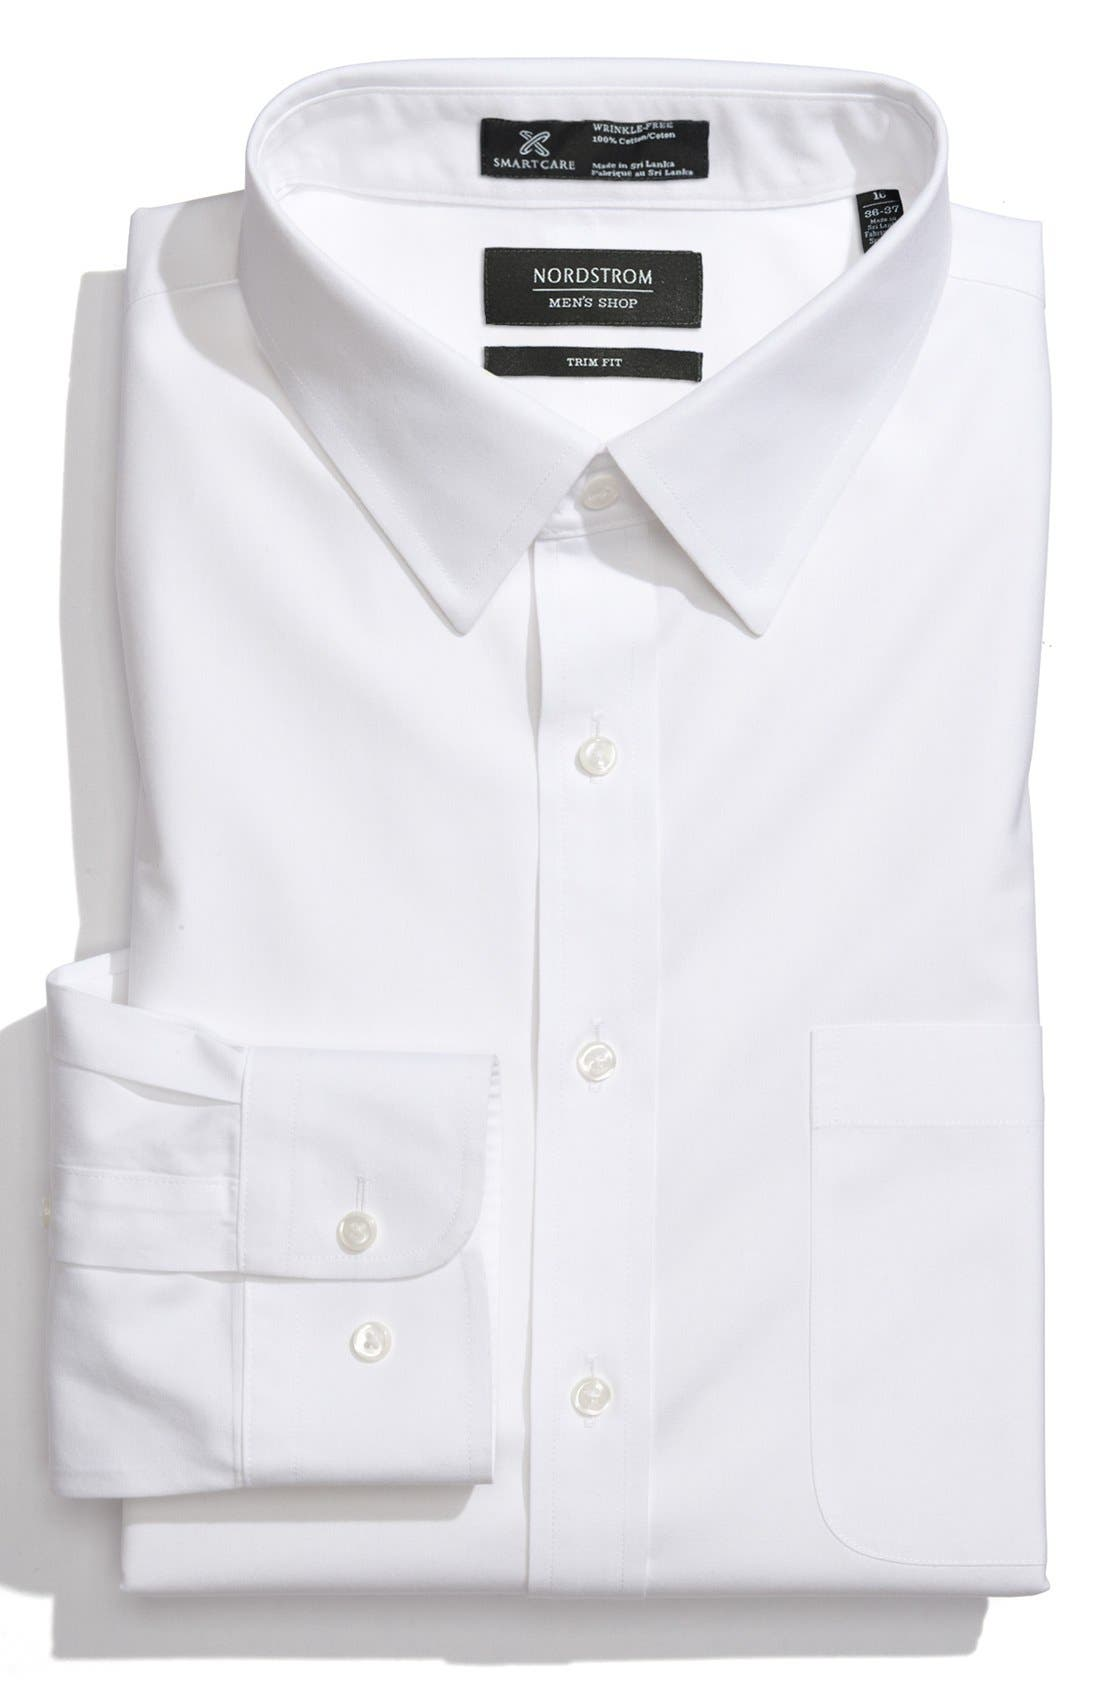 Main Image - Nordstrom Men's Shop Smartcare™ Trim Fit Solid Dress Shirt